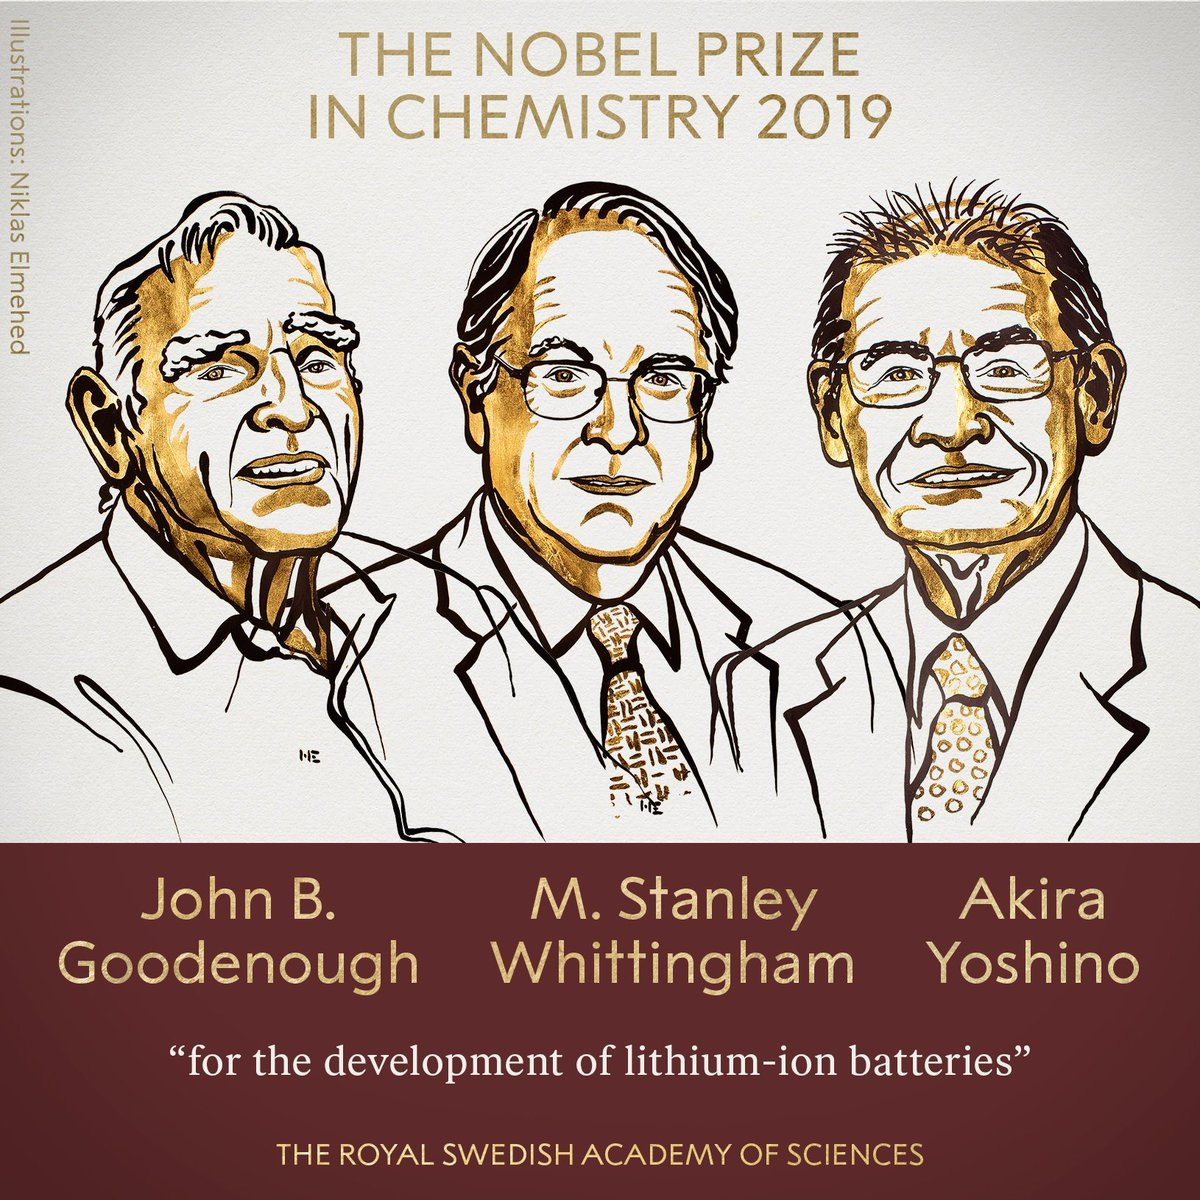 Inventor, teacher, Texas Engineer, and now #NobelPrize winner 🤘🤘🤘Congratulations to John Goodenough, winner of the Nobel Prize in Chemistry for his development of lithium-ion batteries: https://bit.ly/2nuxSea